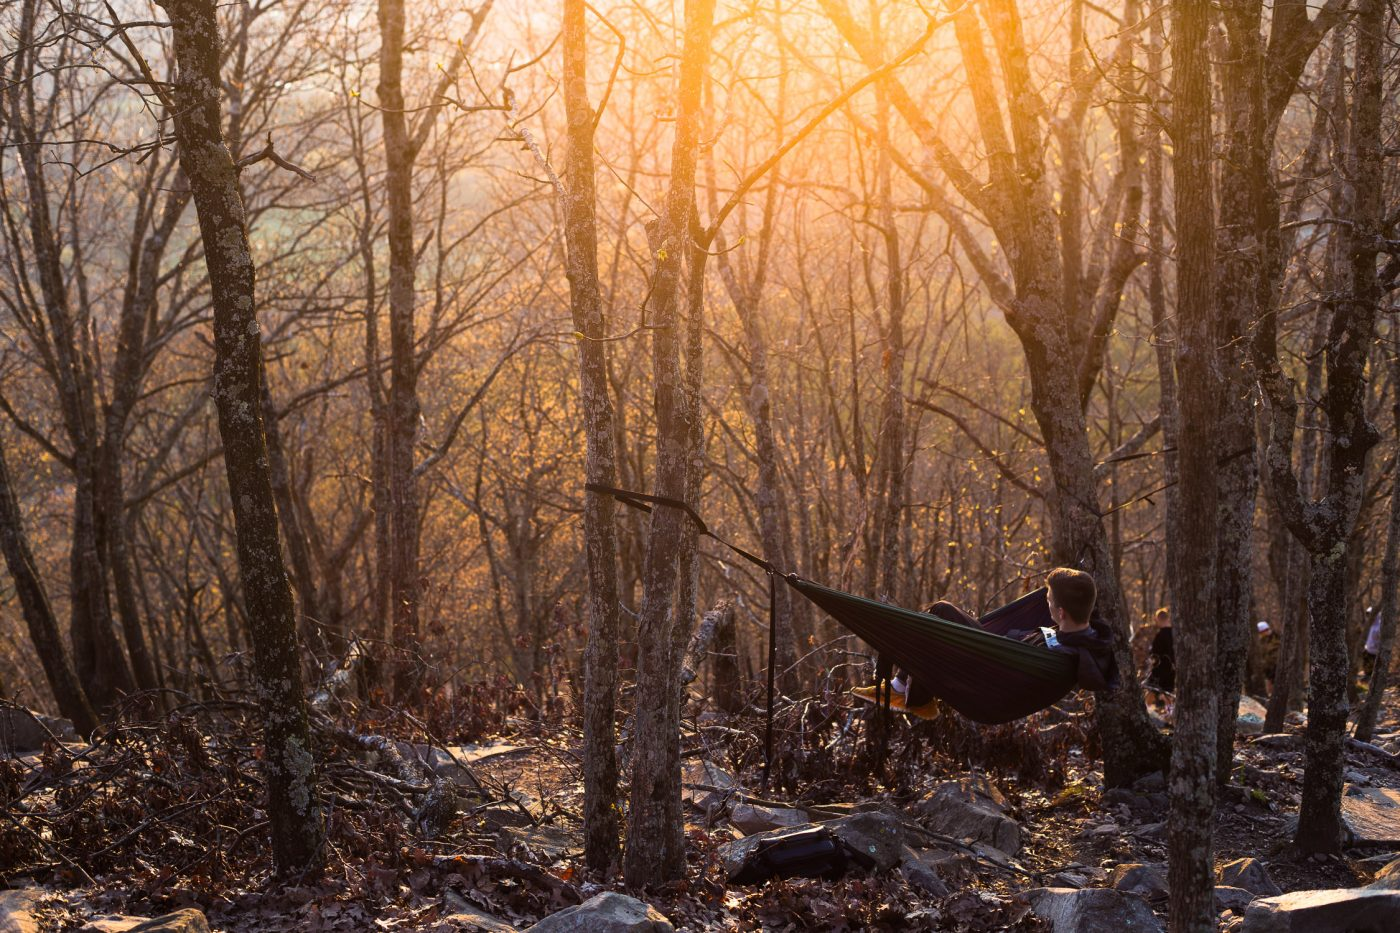 Relaxing in a hammock at Pinnacle Mountain State Park in Arkansas